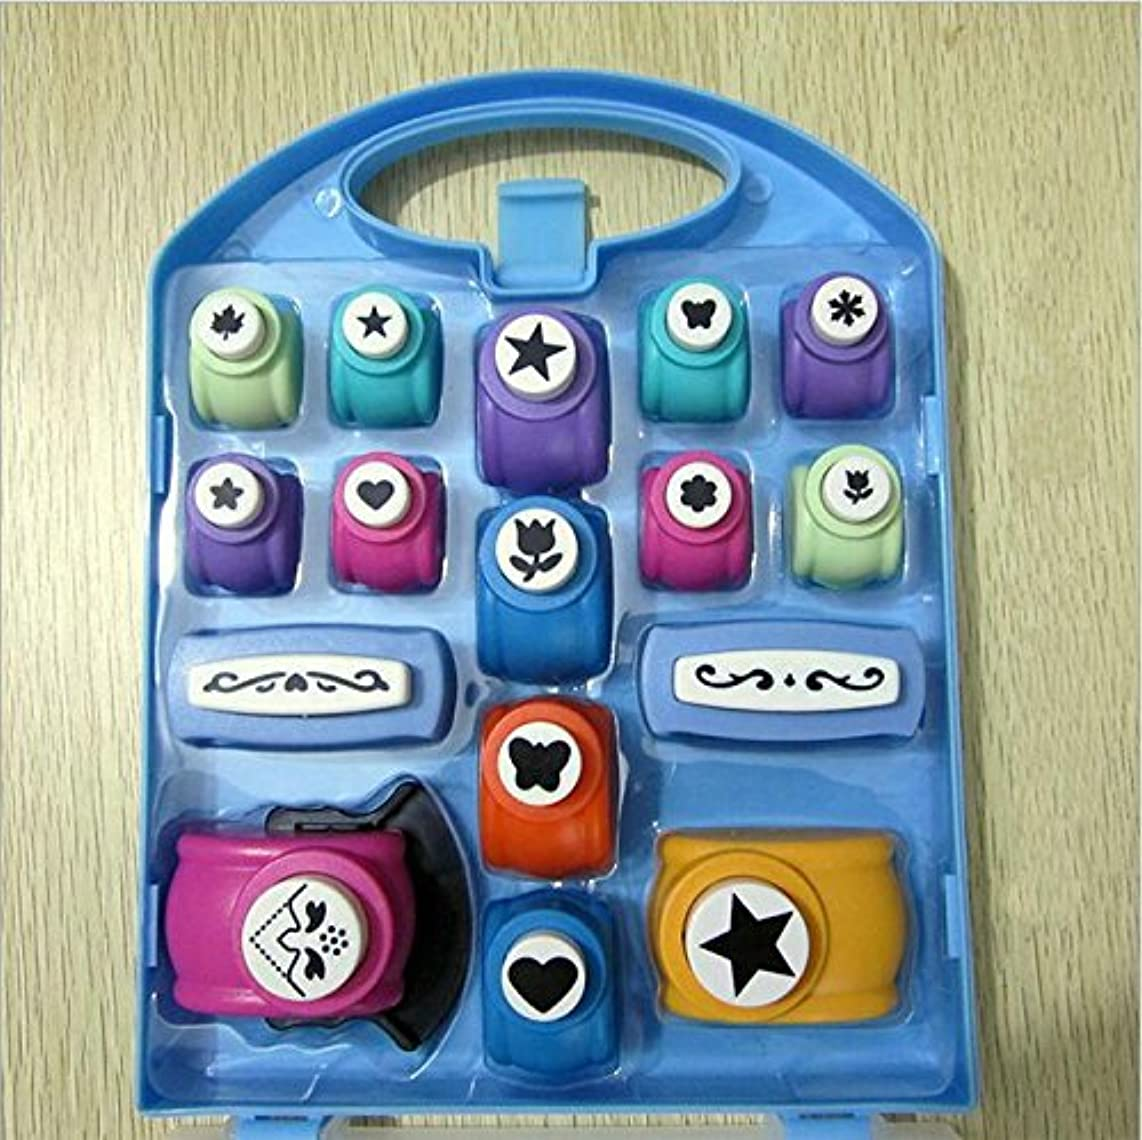 Since Set of 16 Paper Punch,Scrapbooking Punches ,Cute Multi-pattern Hand Press Shapes,Kid Cut DIY Handmade Hole Puncher for Festival Papers and Greeting Card